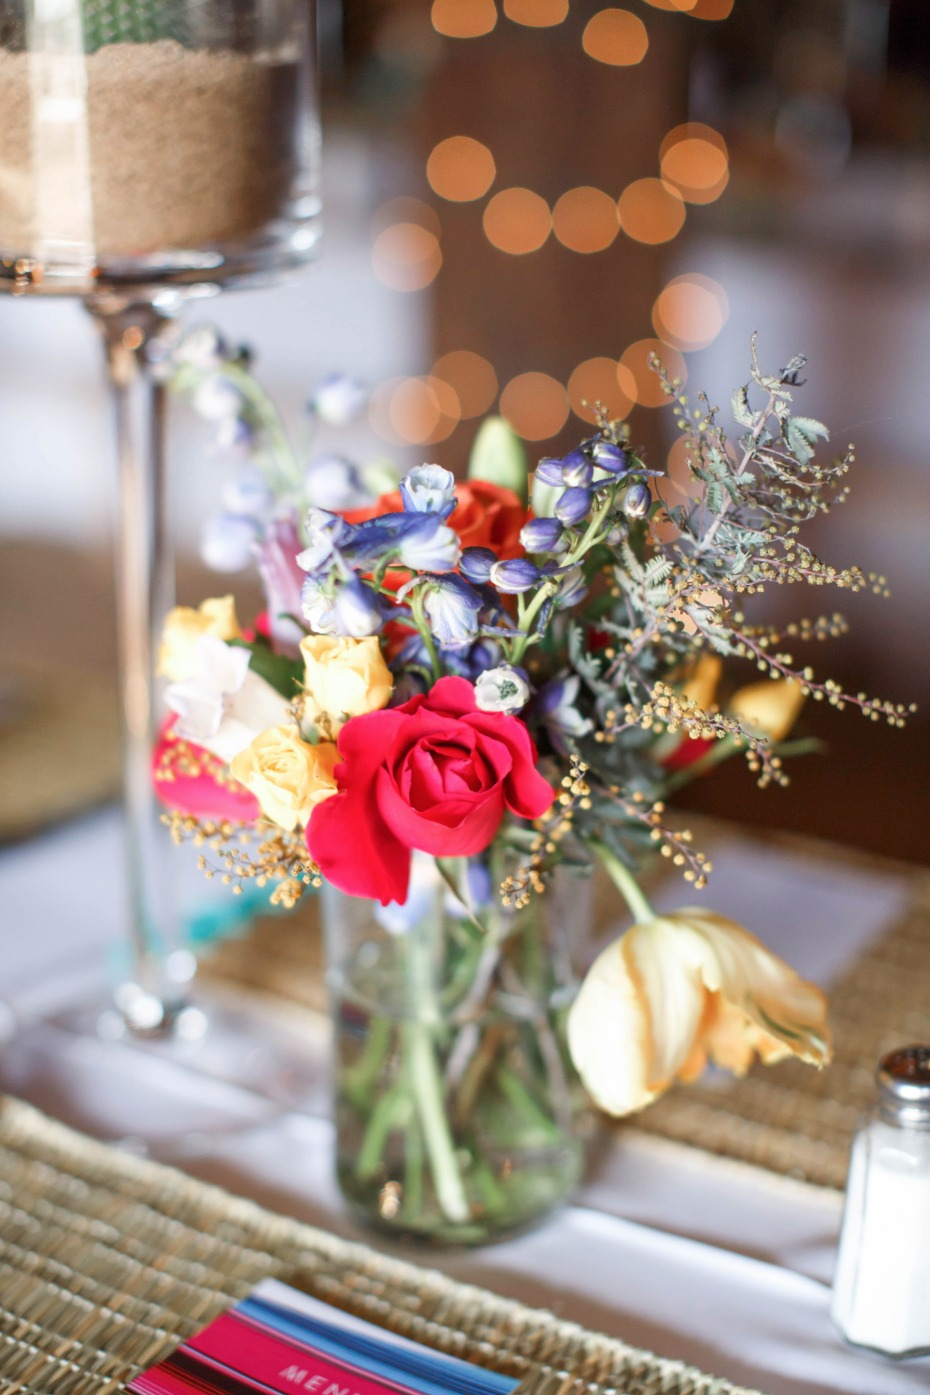 Chic little centerpiece